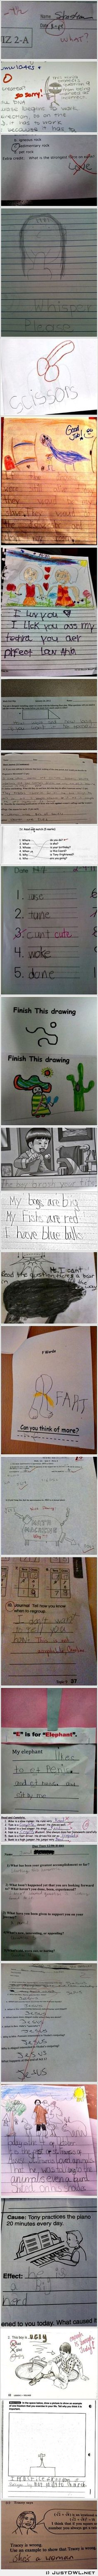 #Unintentionally Inappropriate test #answers by #children